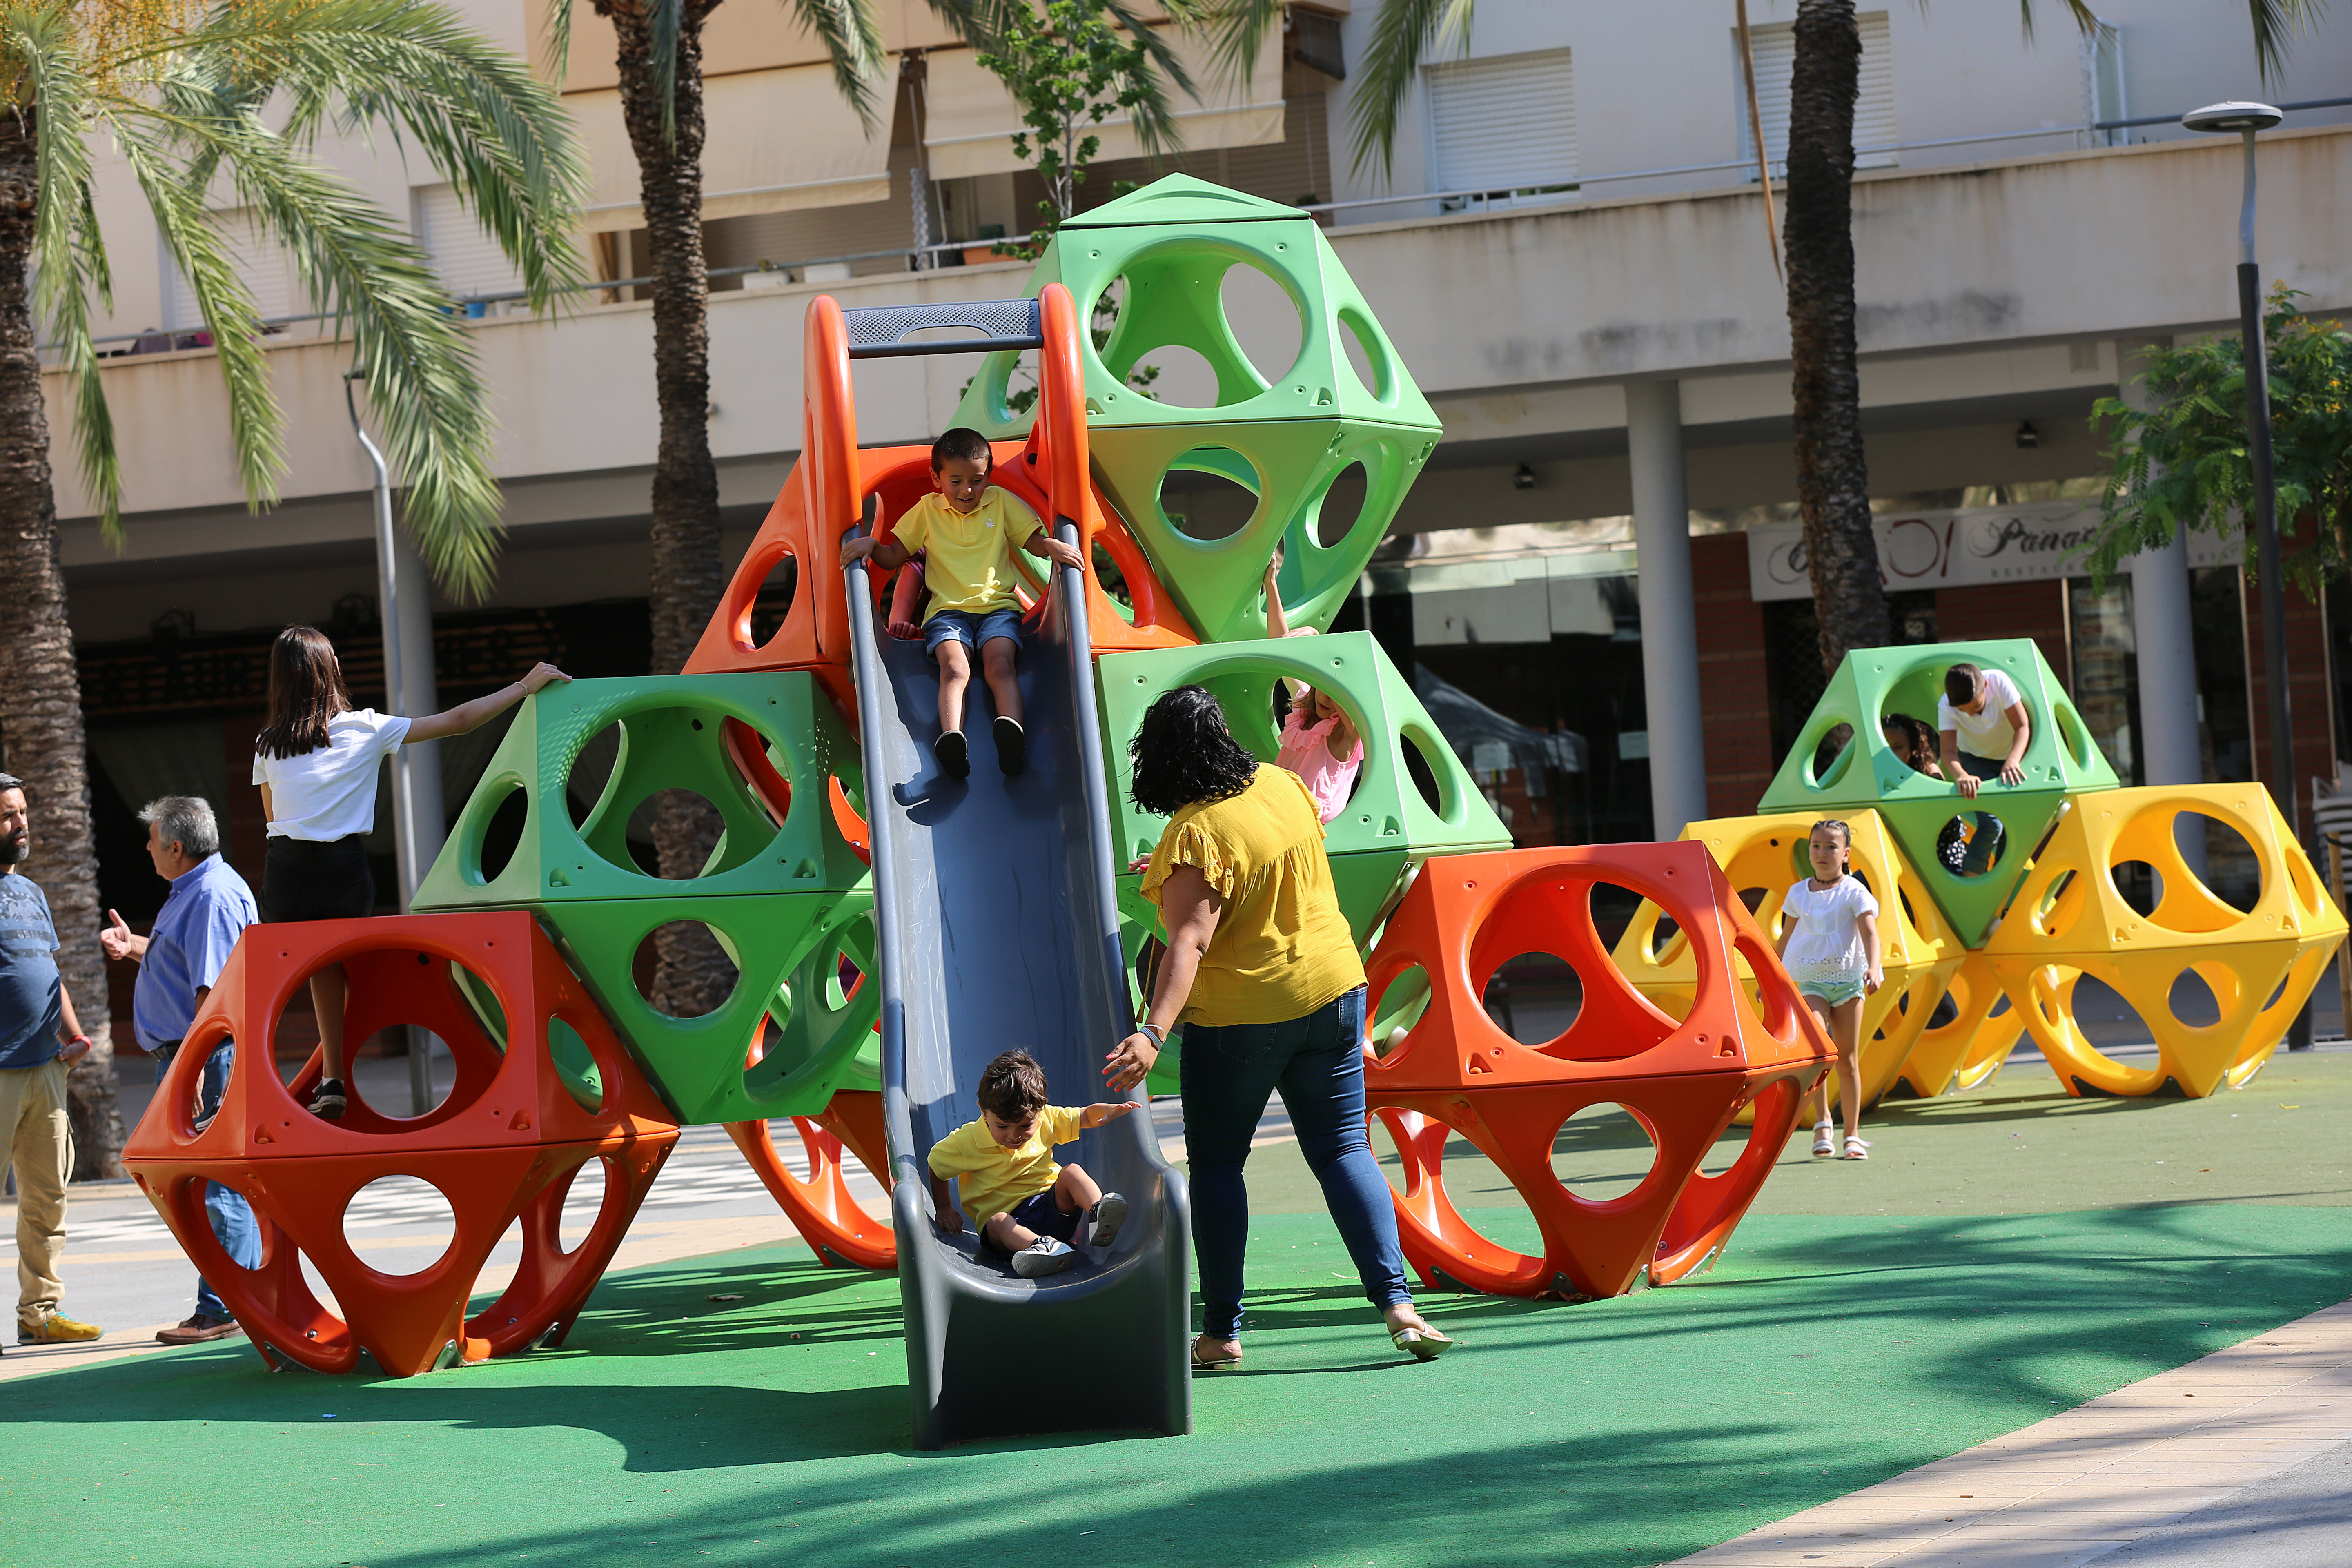 Play Cubes with slide in Spain